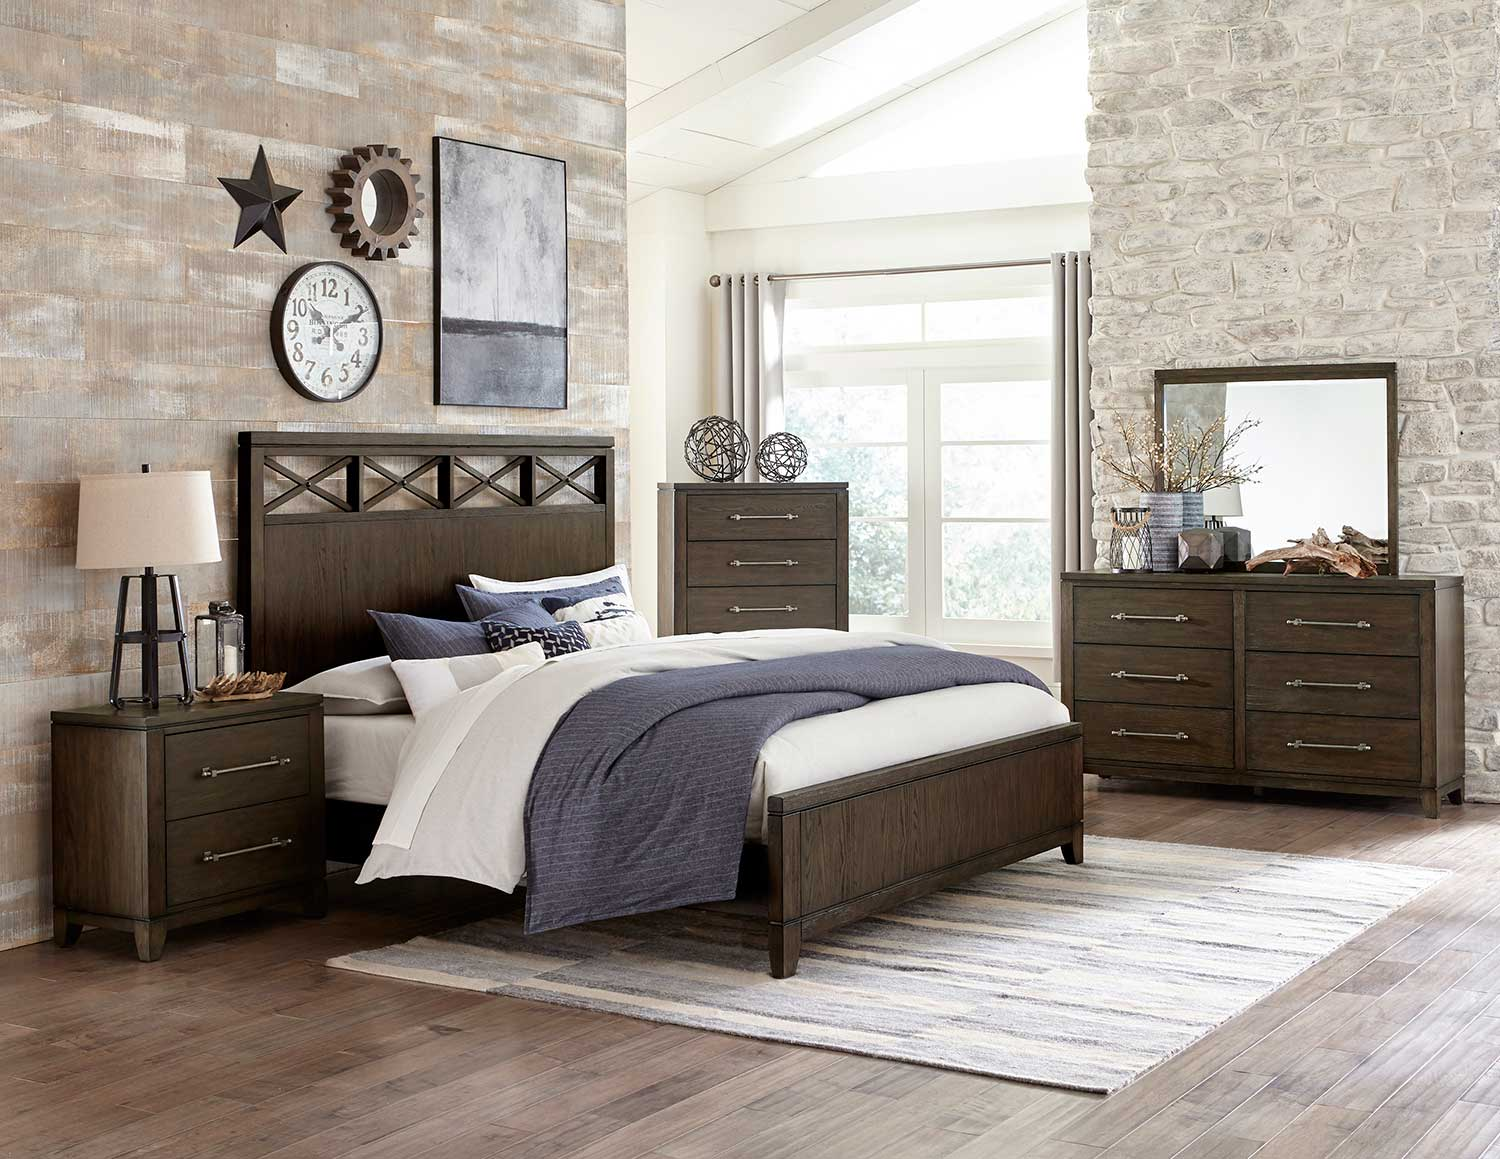 Homelegance Griggs Bedroom Set - Espresso